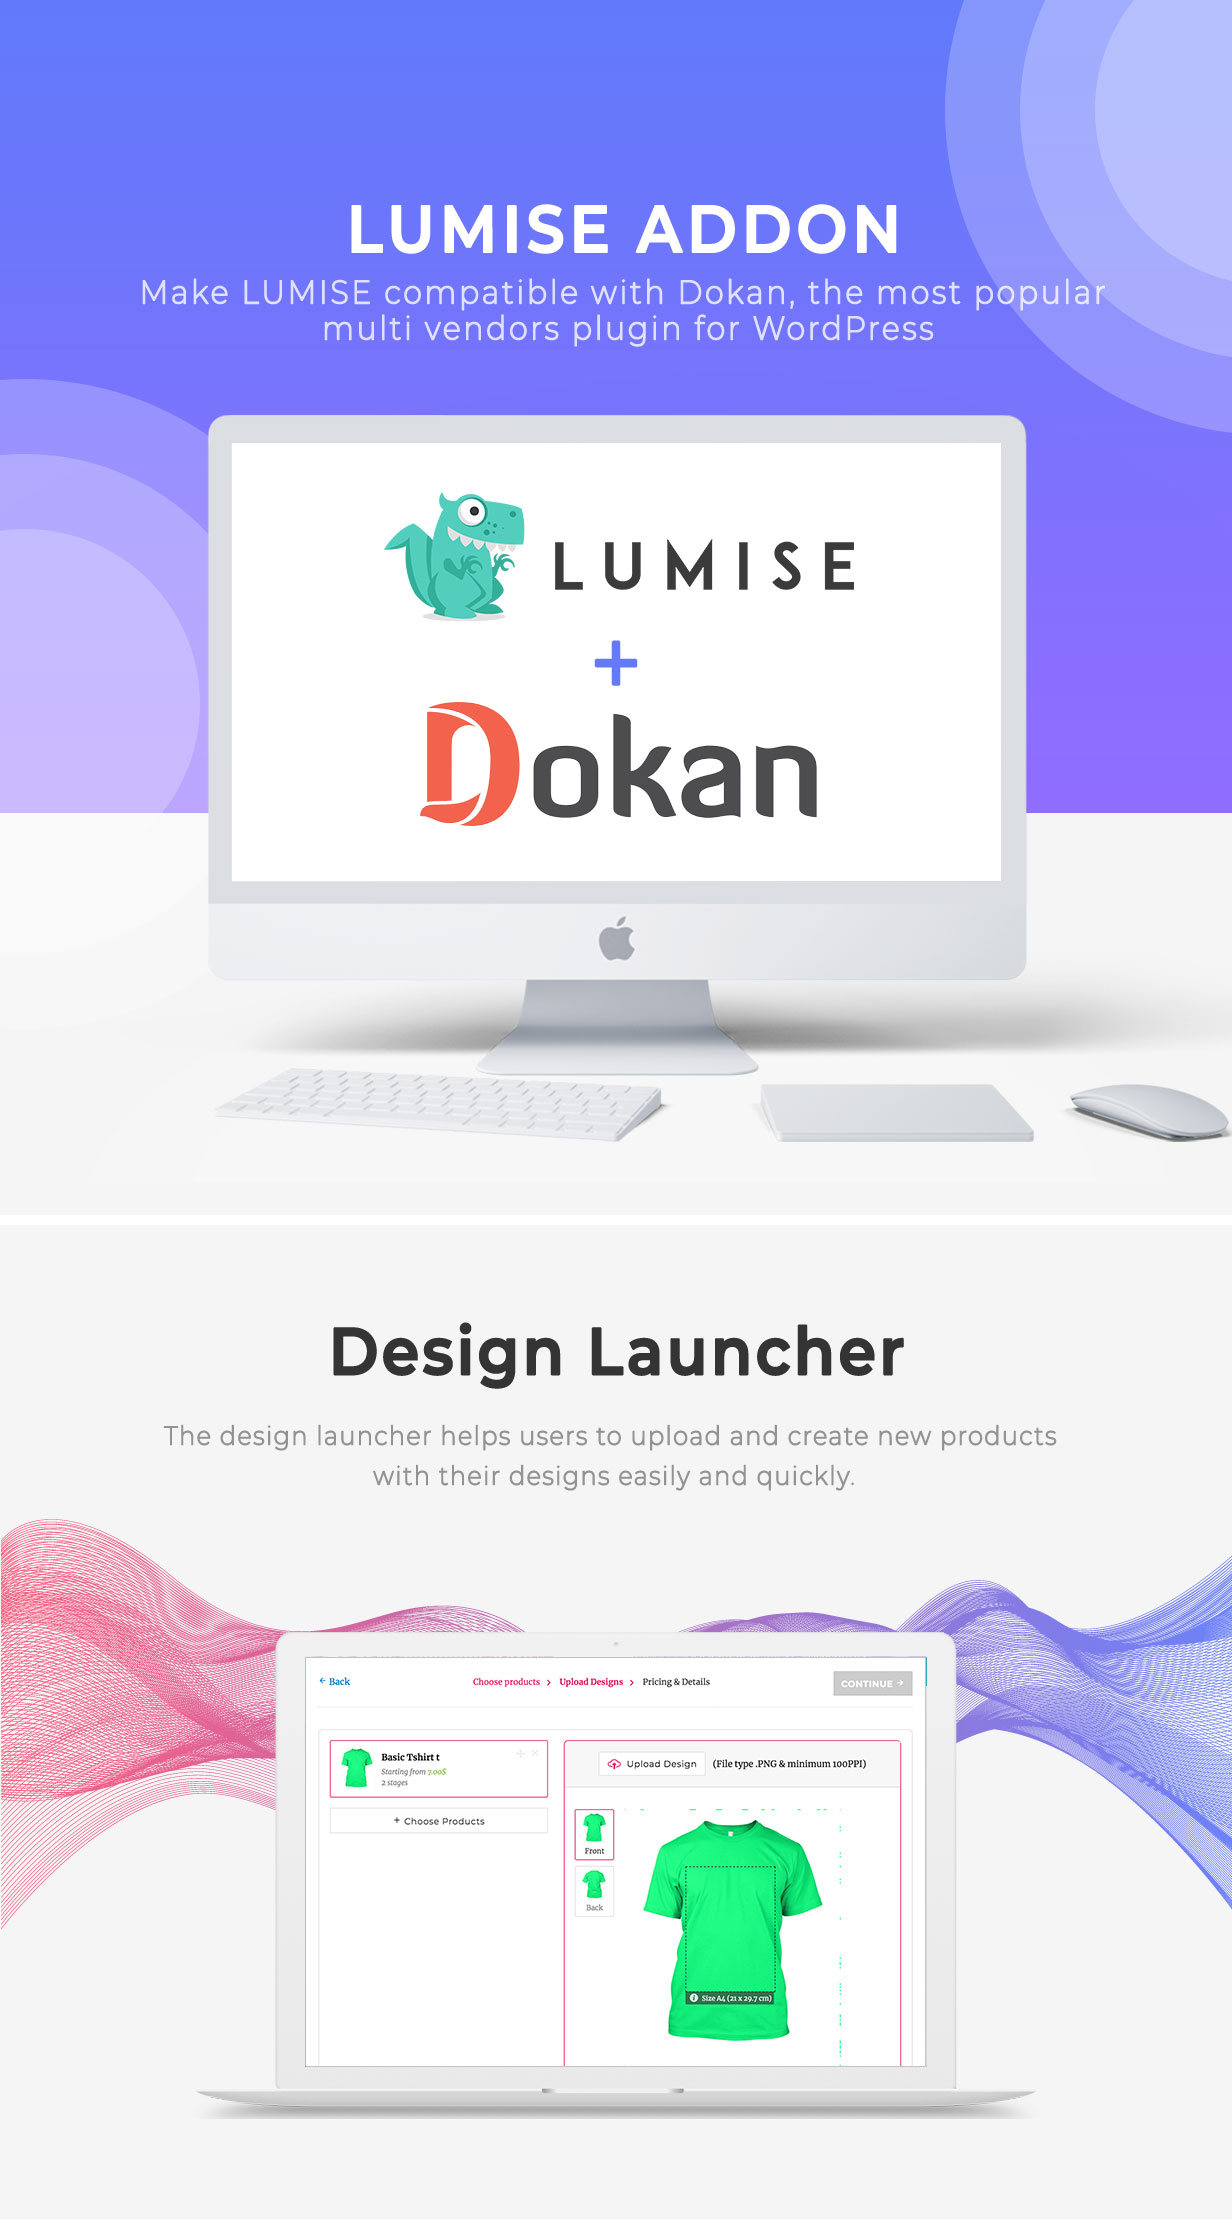 Vendors & Design Launcher Addon for LUMISE Product Designer - 2